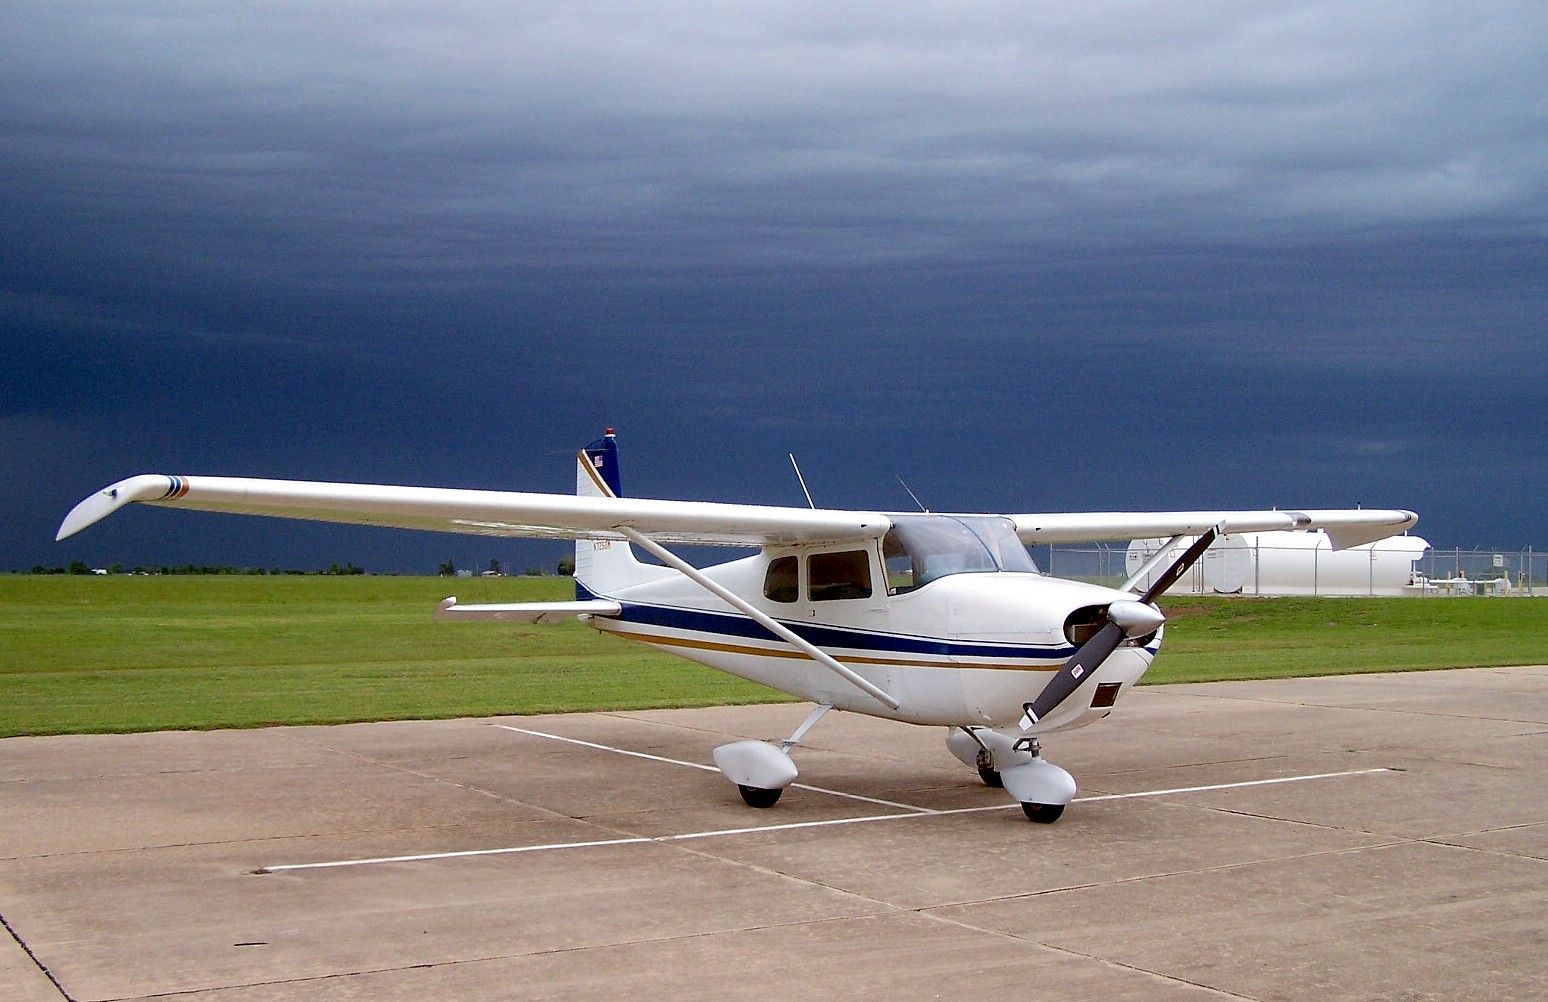 1958 Cessna 175 for sale in OK United States => www